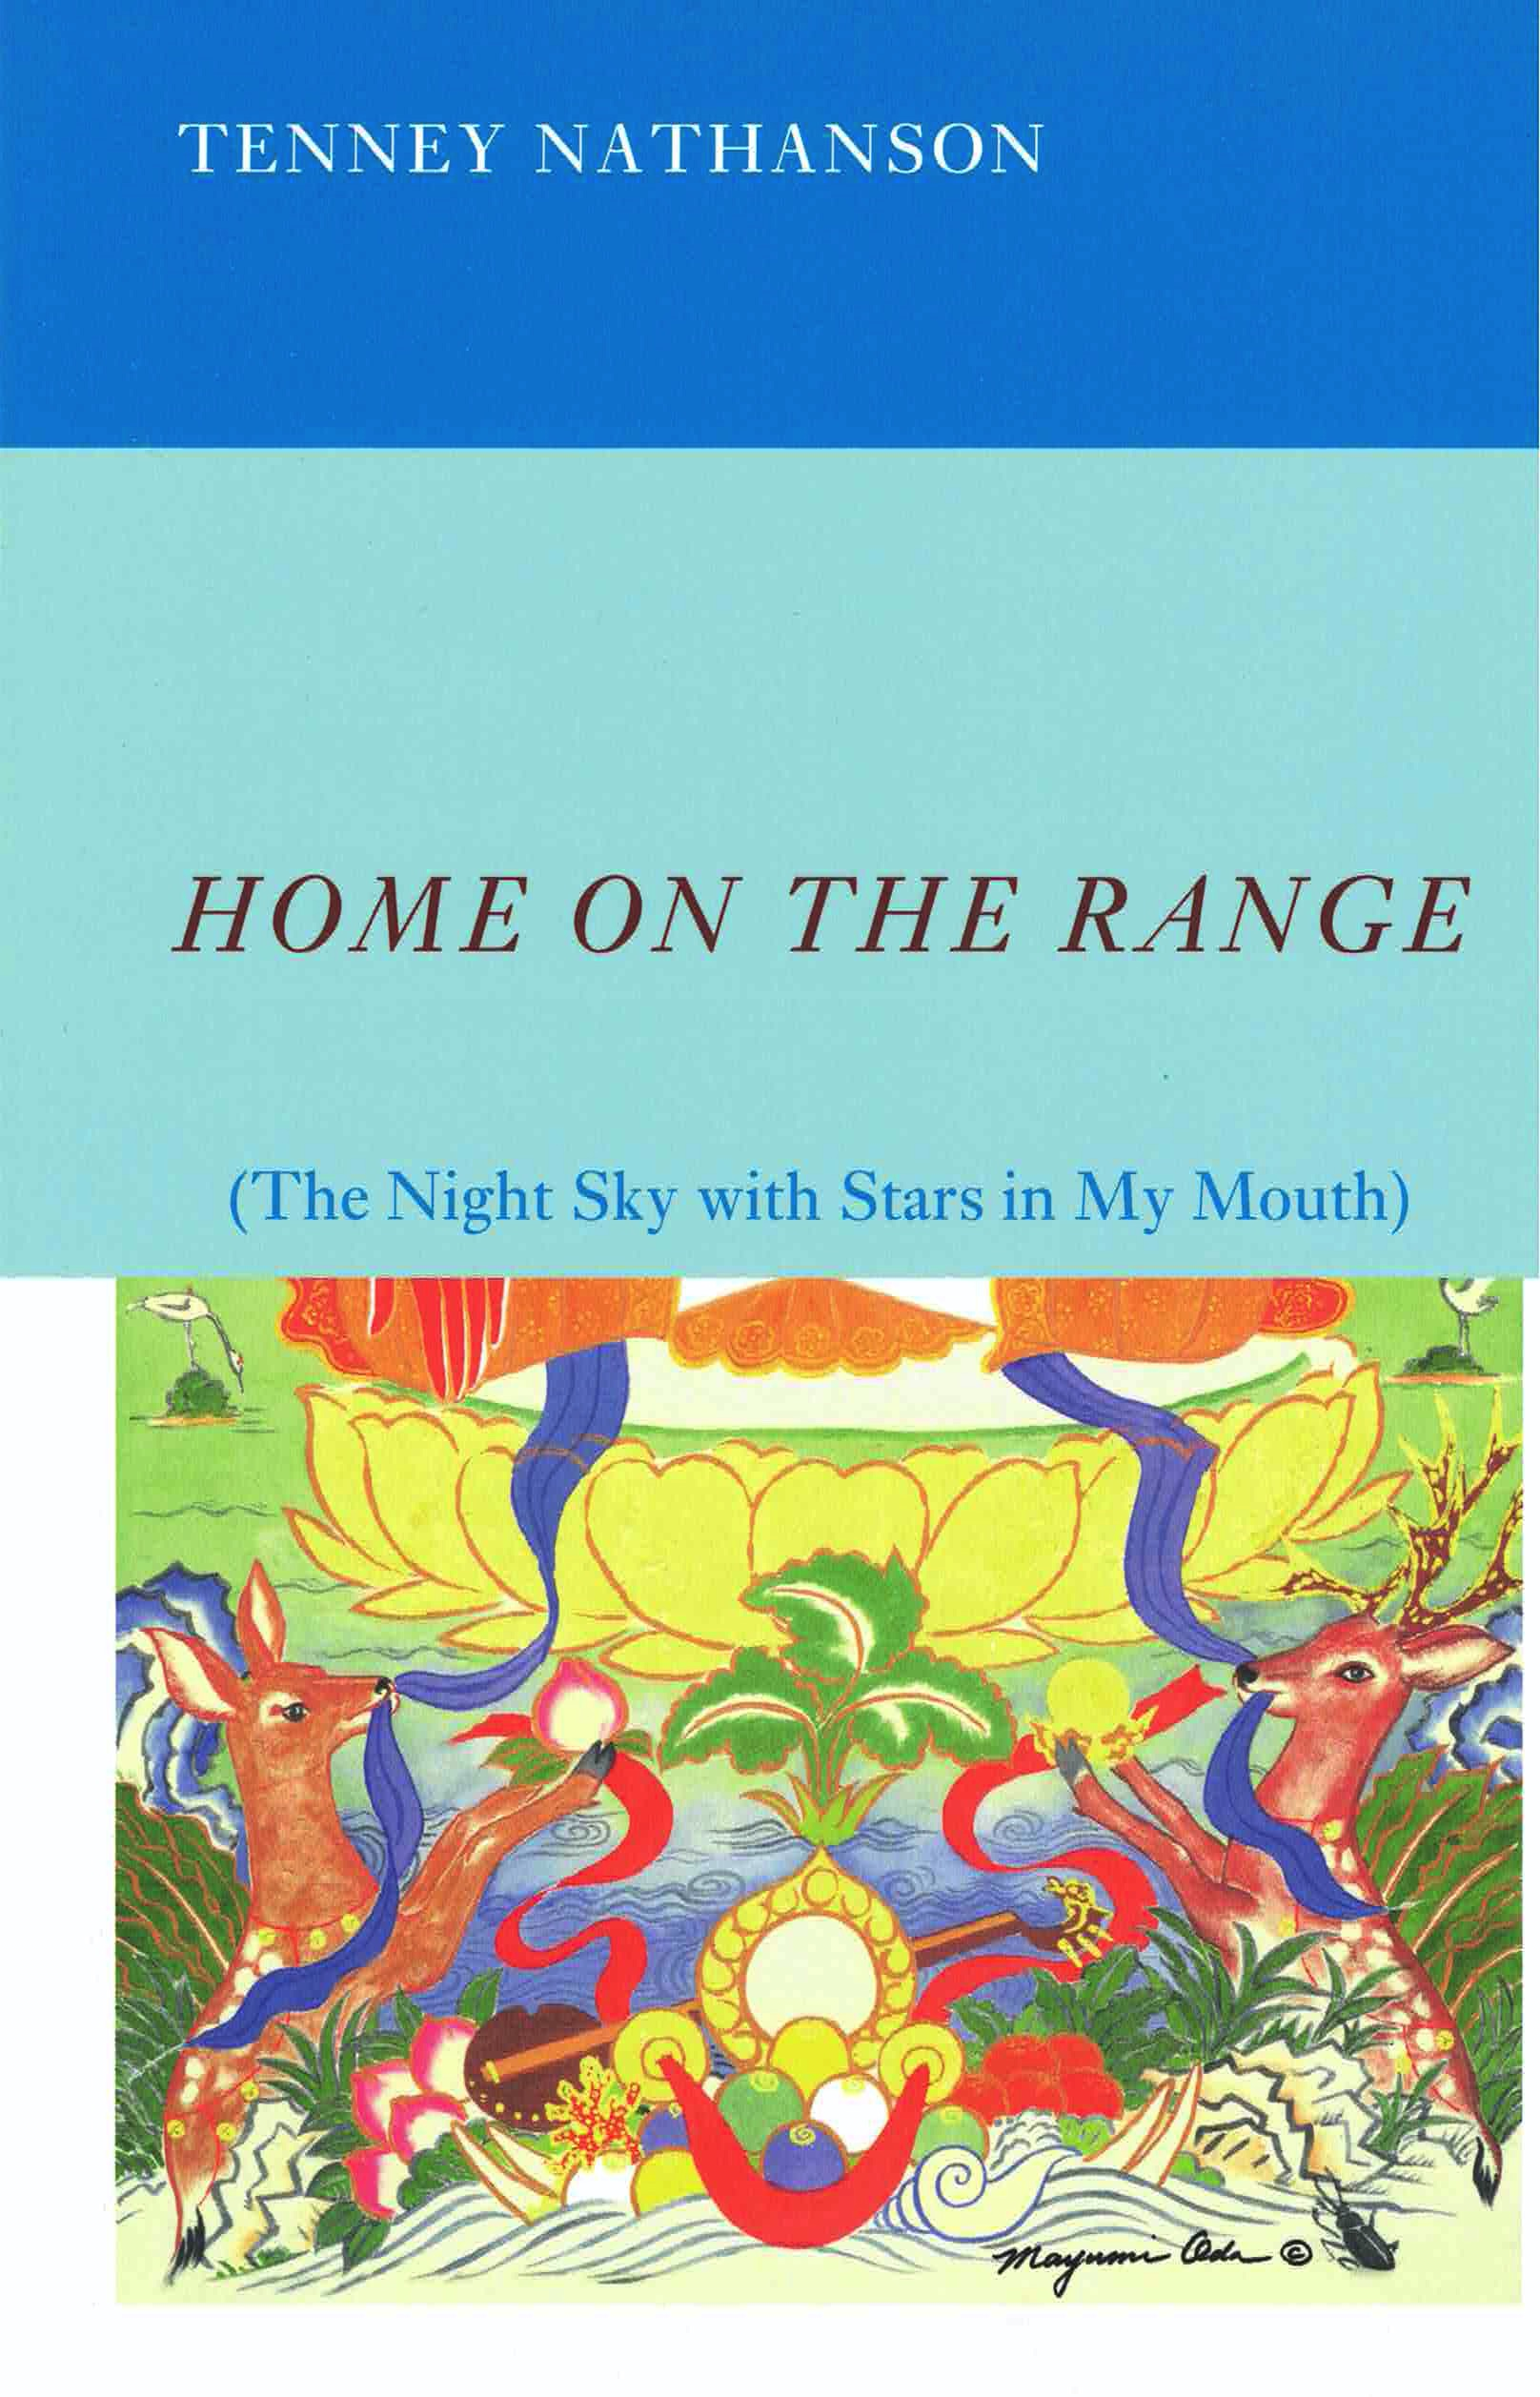 cover of Home on the Range by Tenney Nathanson; colorful painting of two deer facing each other with blue ribbon in their mouths in a colorful, mythical landscape